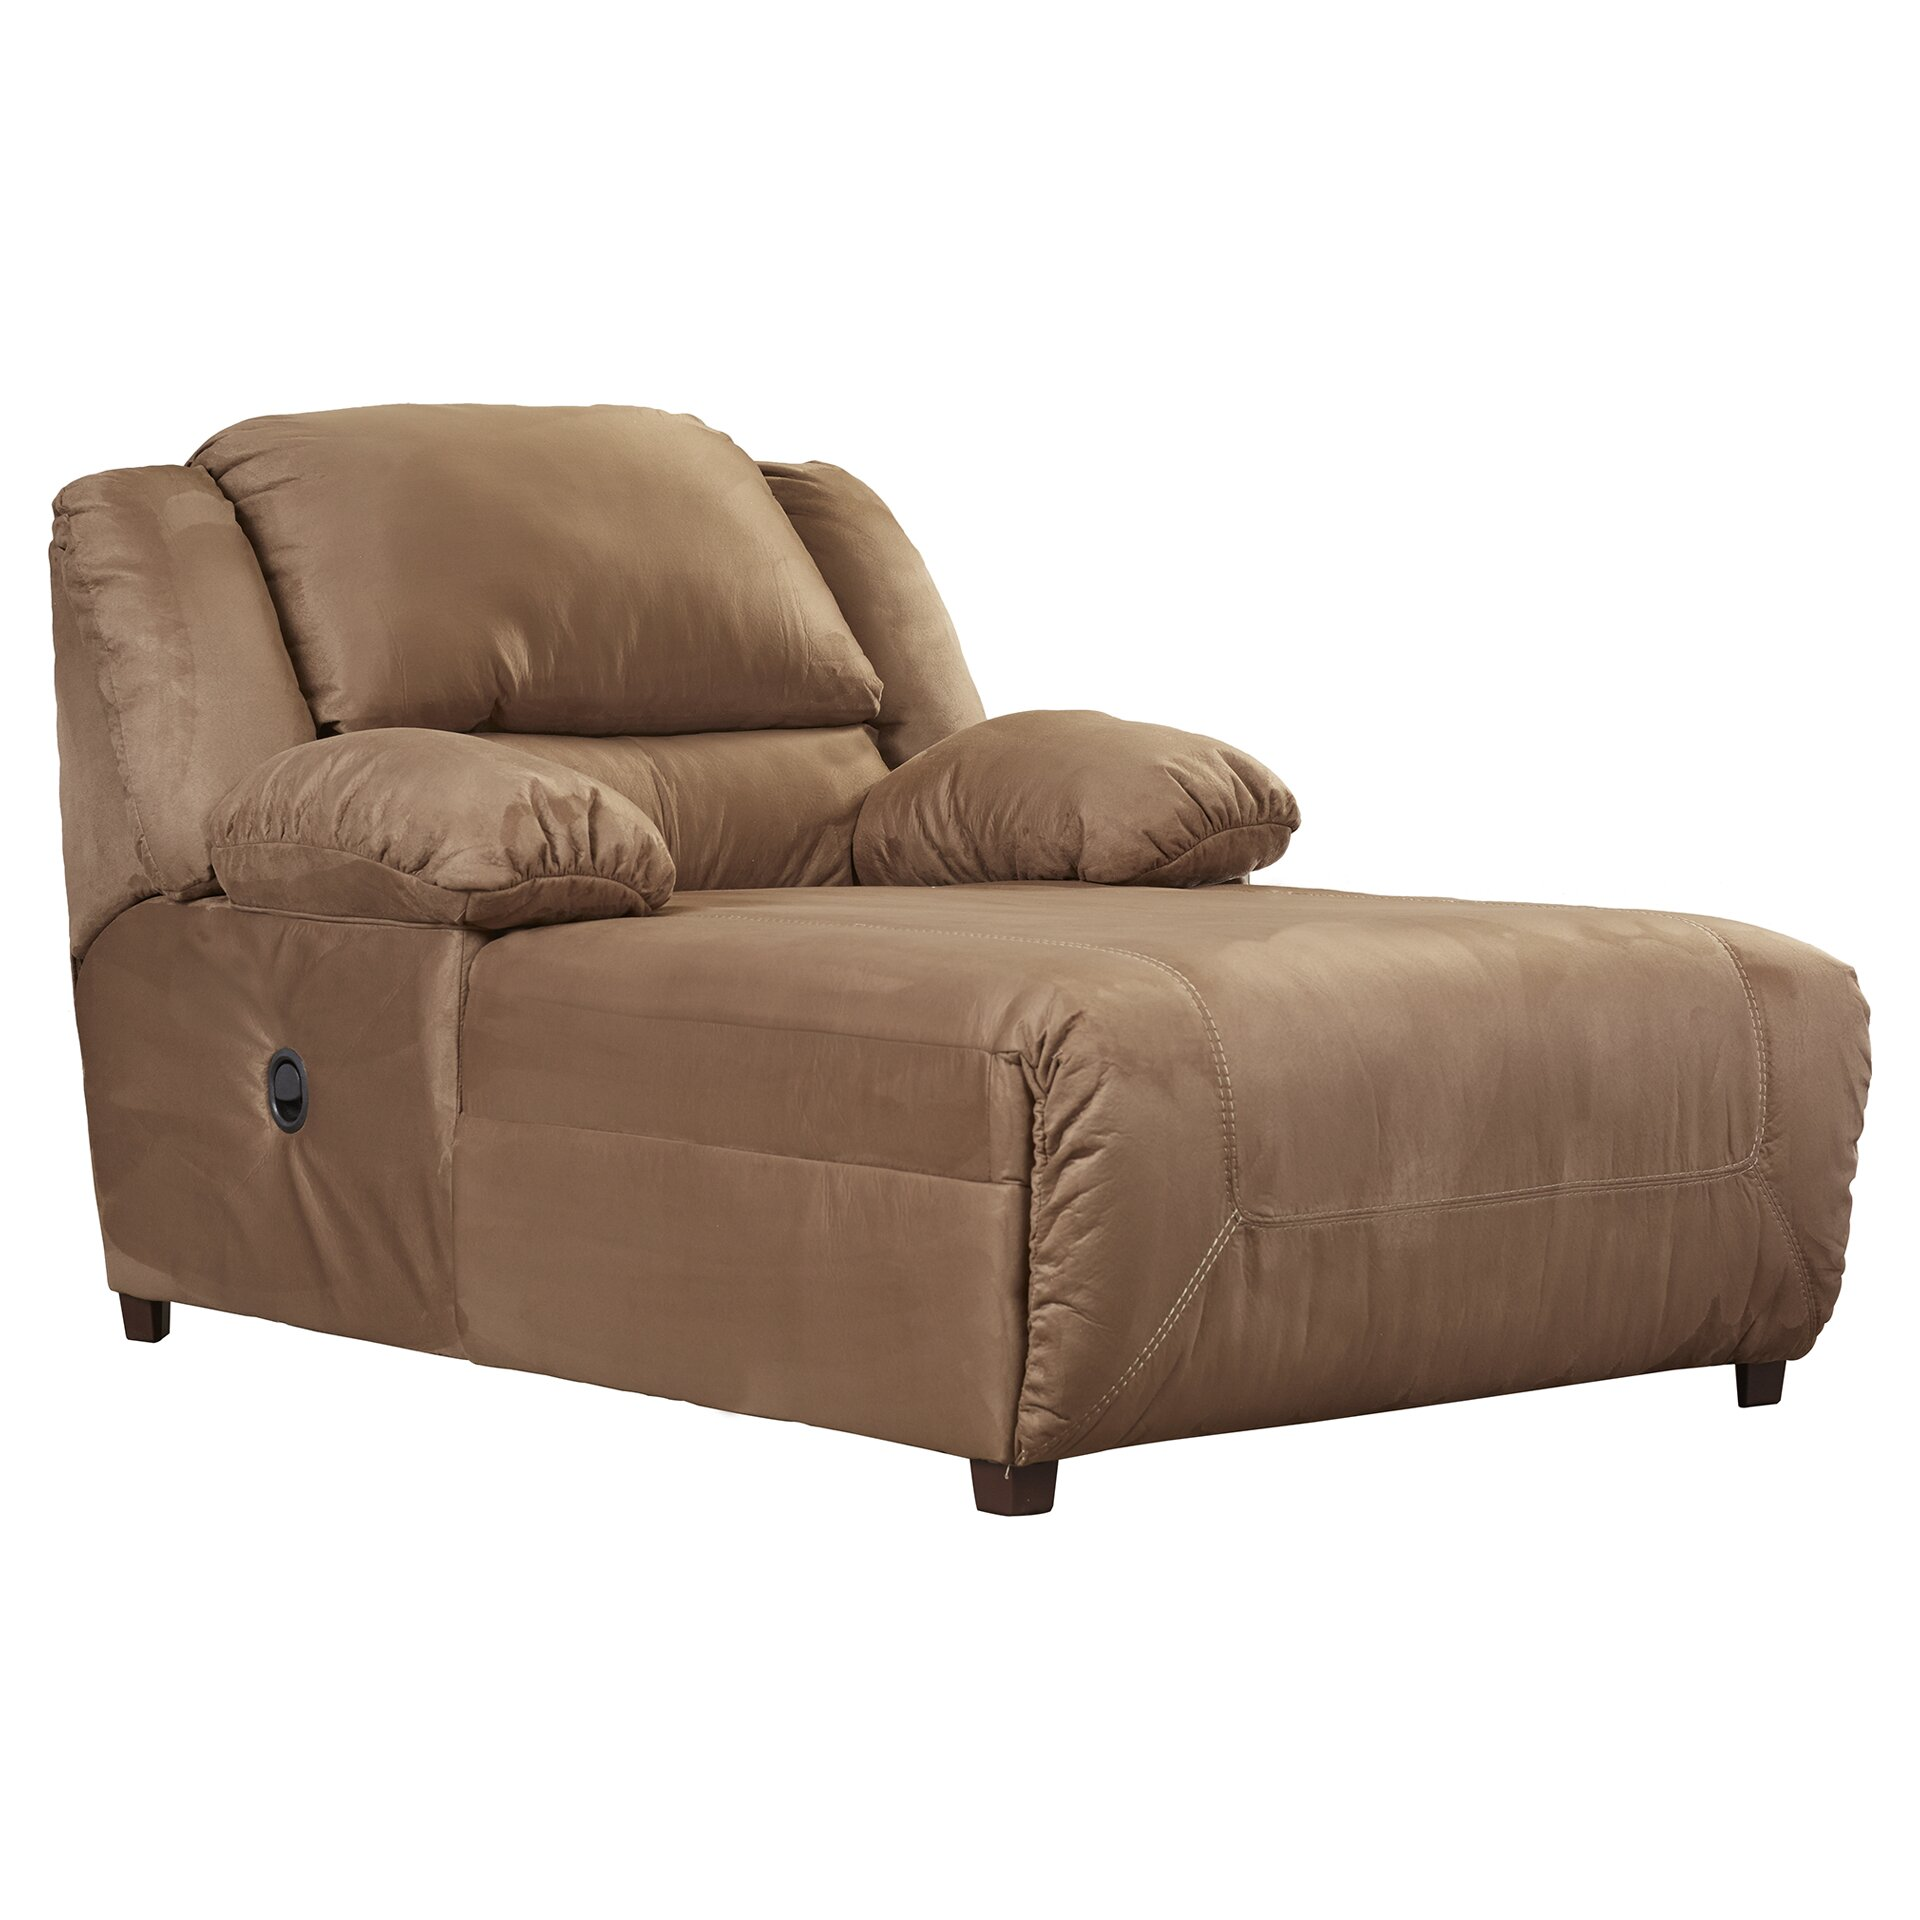 Chaise lounge recliner chaise lounge chairs indoors for Catnapper jackpot reclining chaise